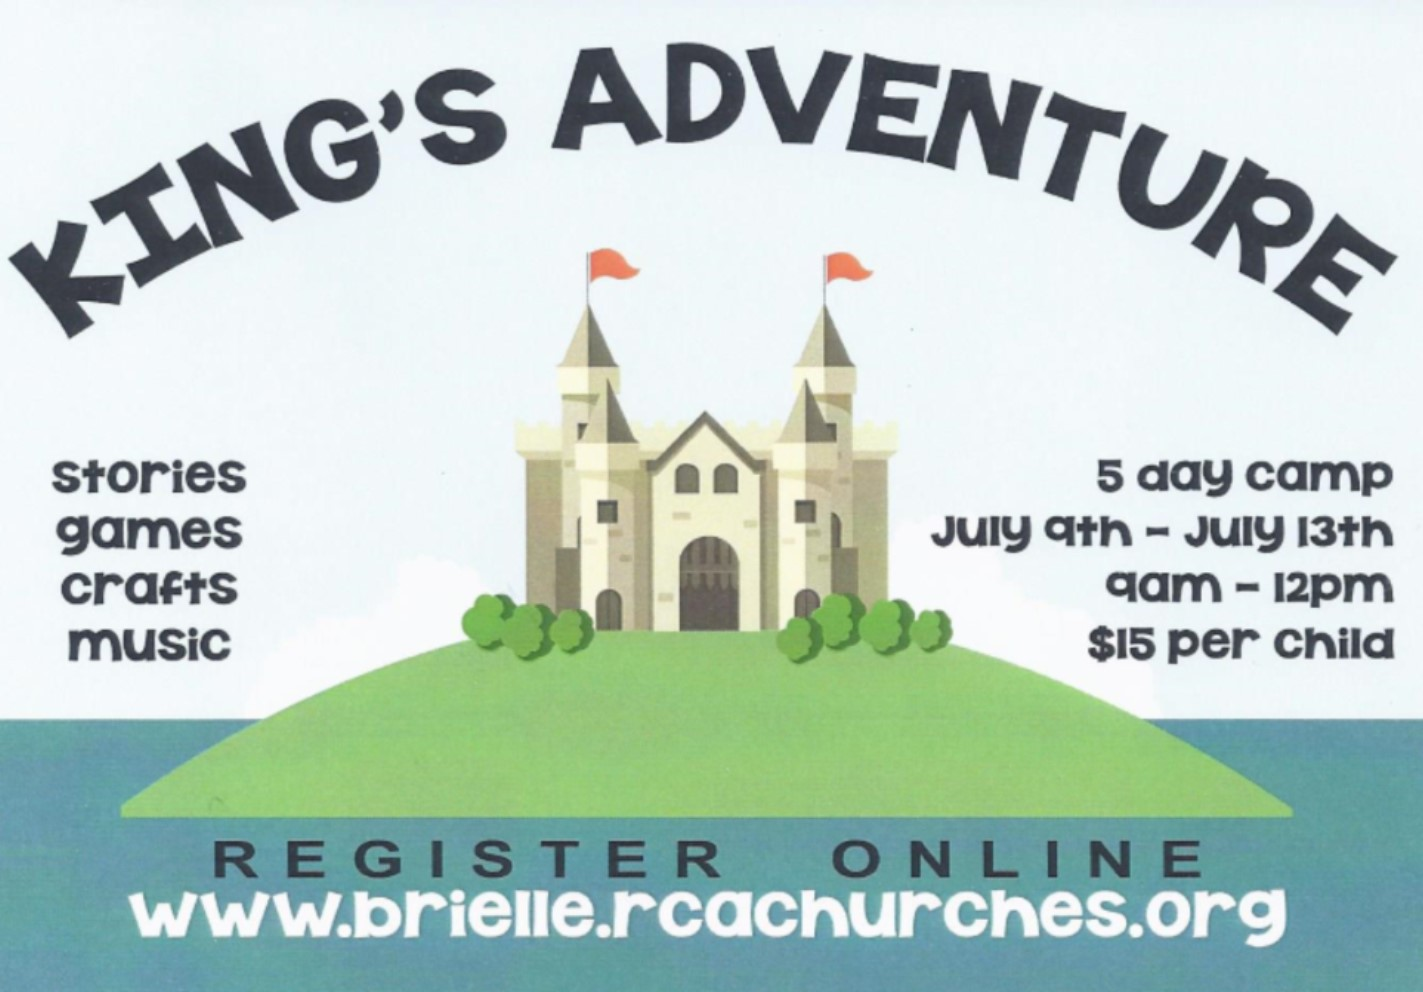 Kings Adventure Vacation Bible School @ The Church in Brielle